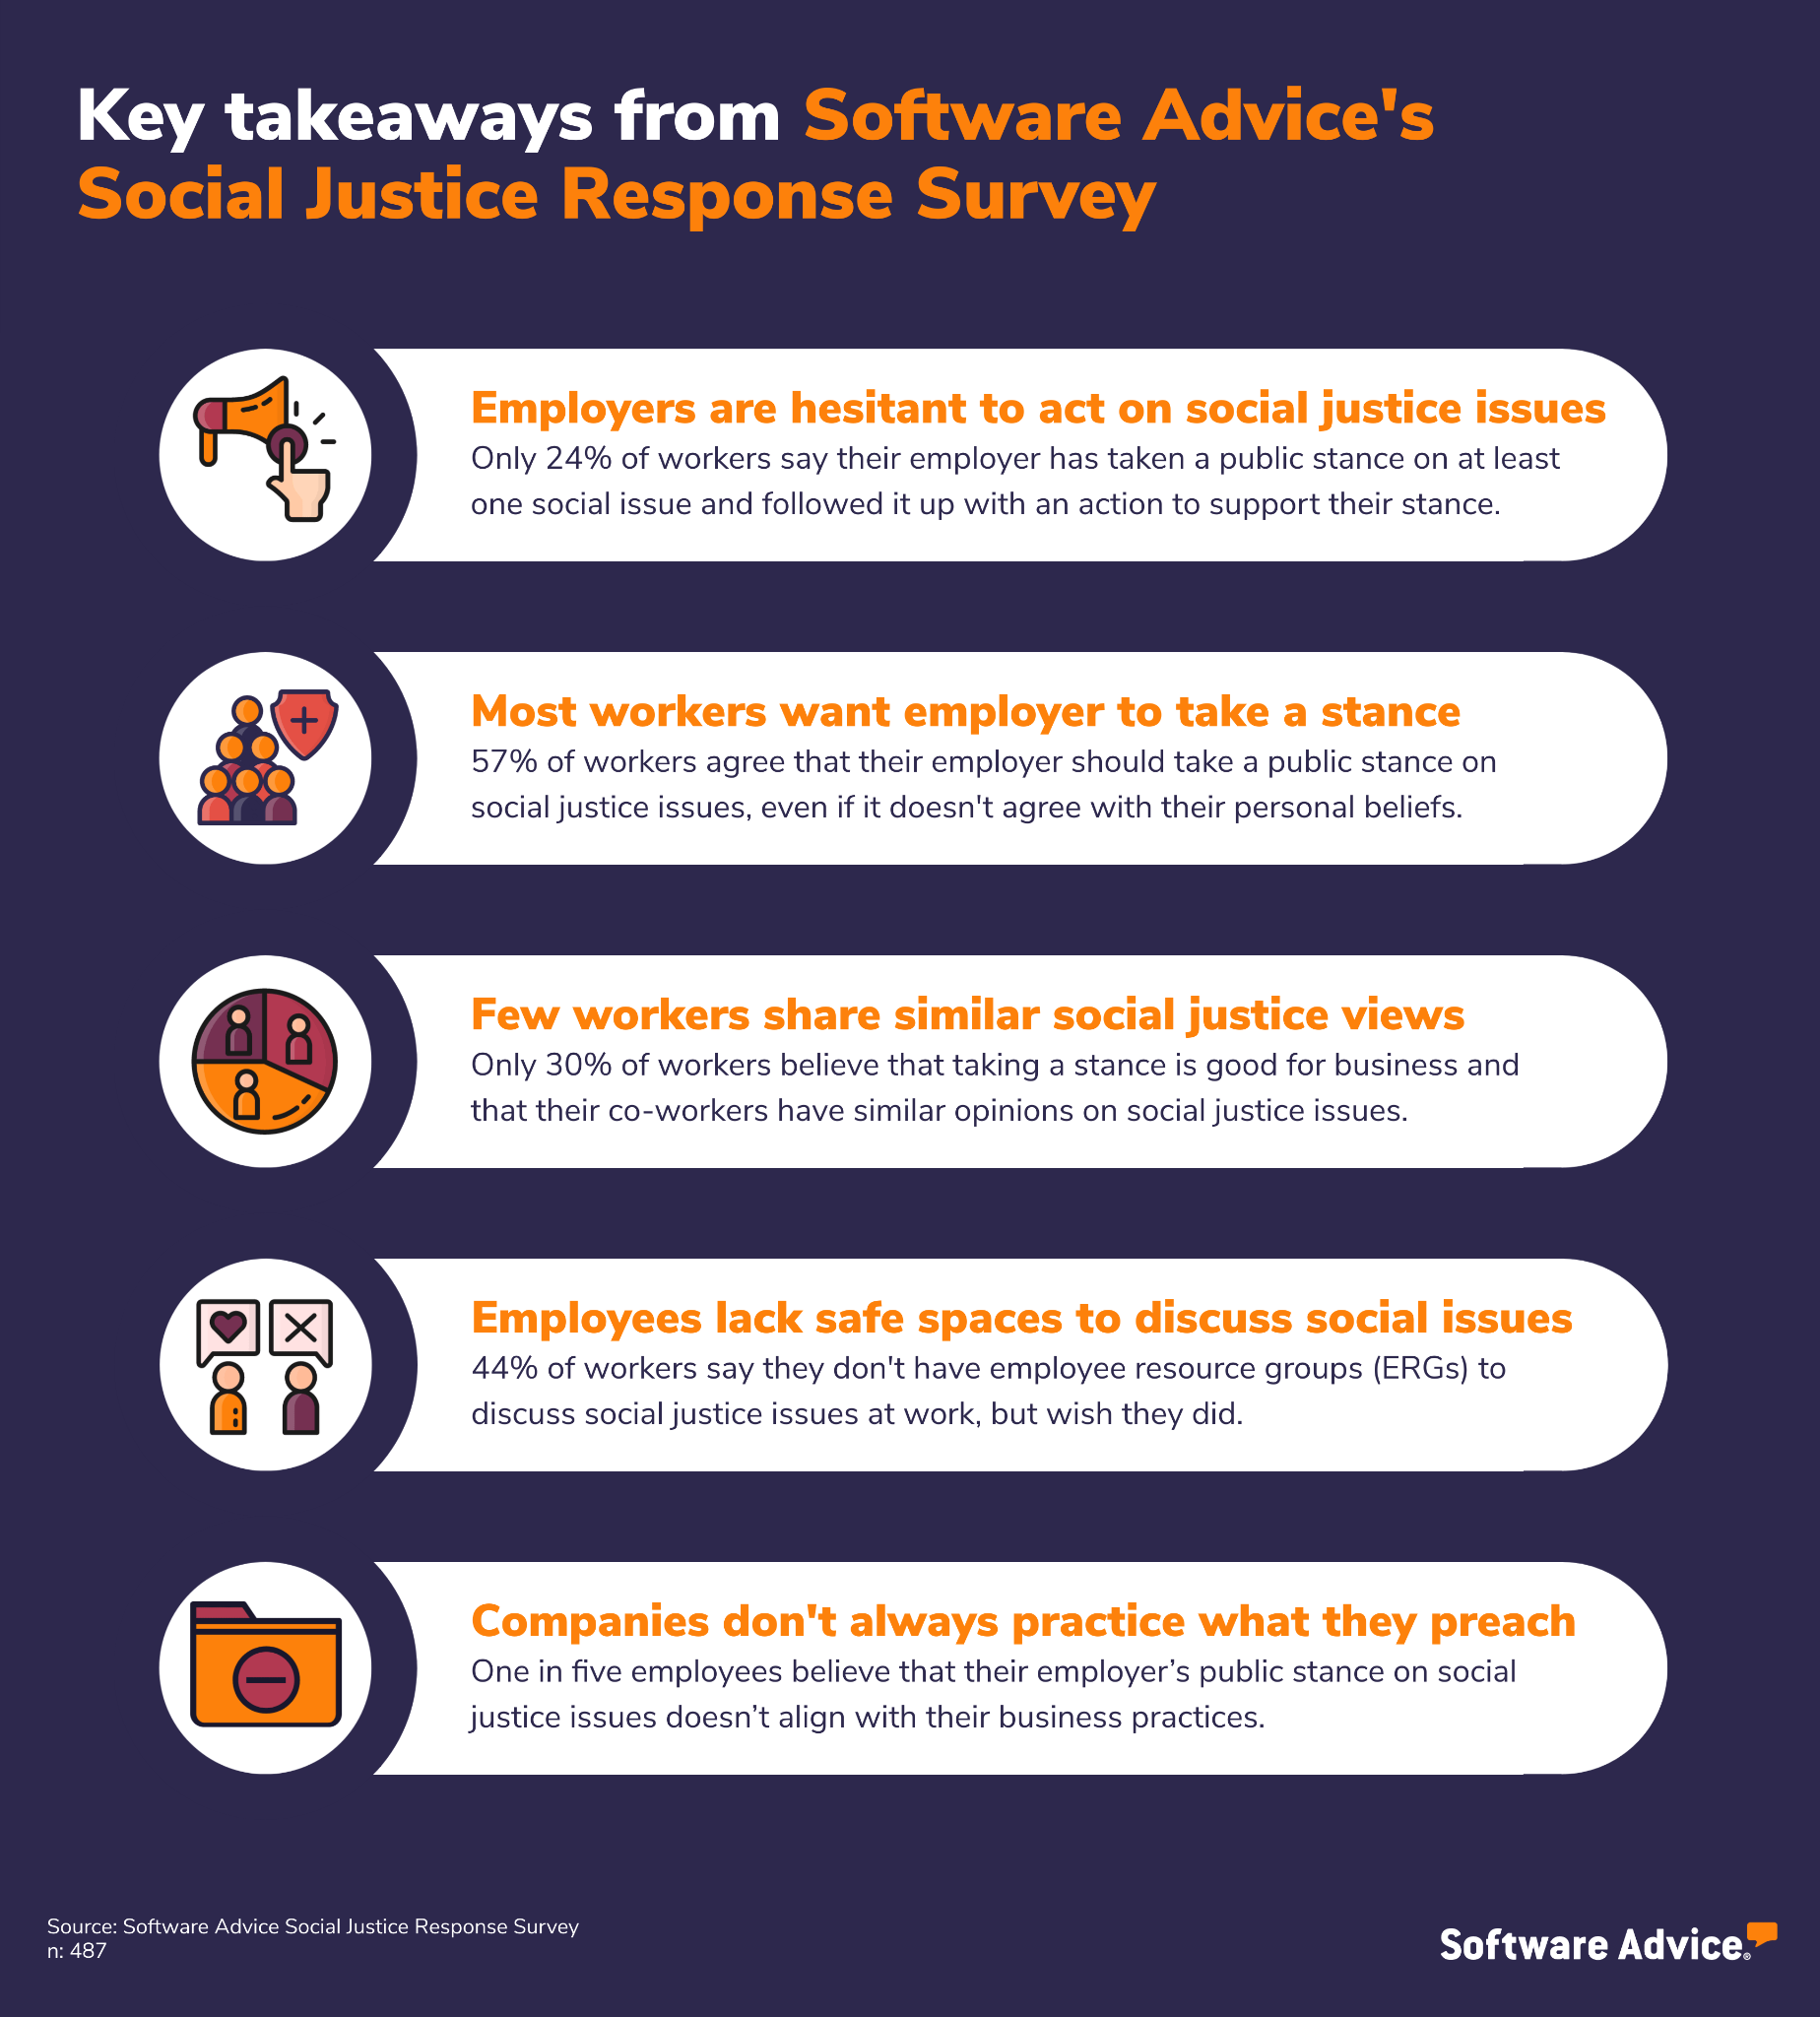 Infographic highlighting the key takeaways from Software Advice's Social Justice Response Survey.